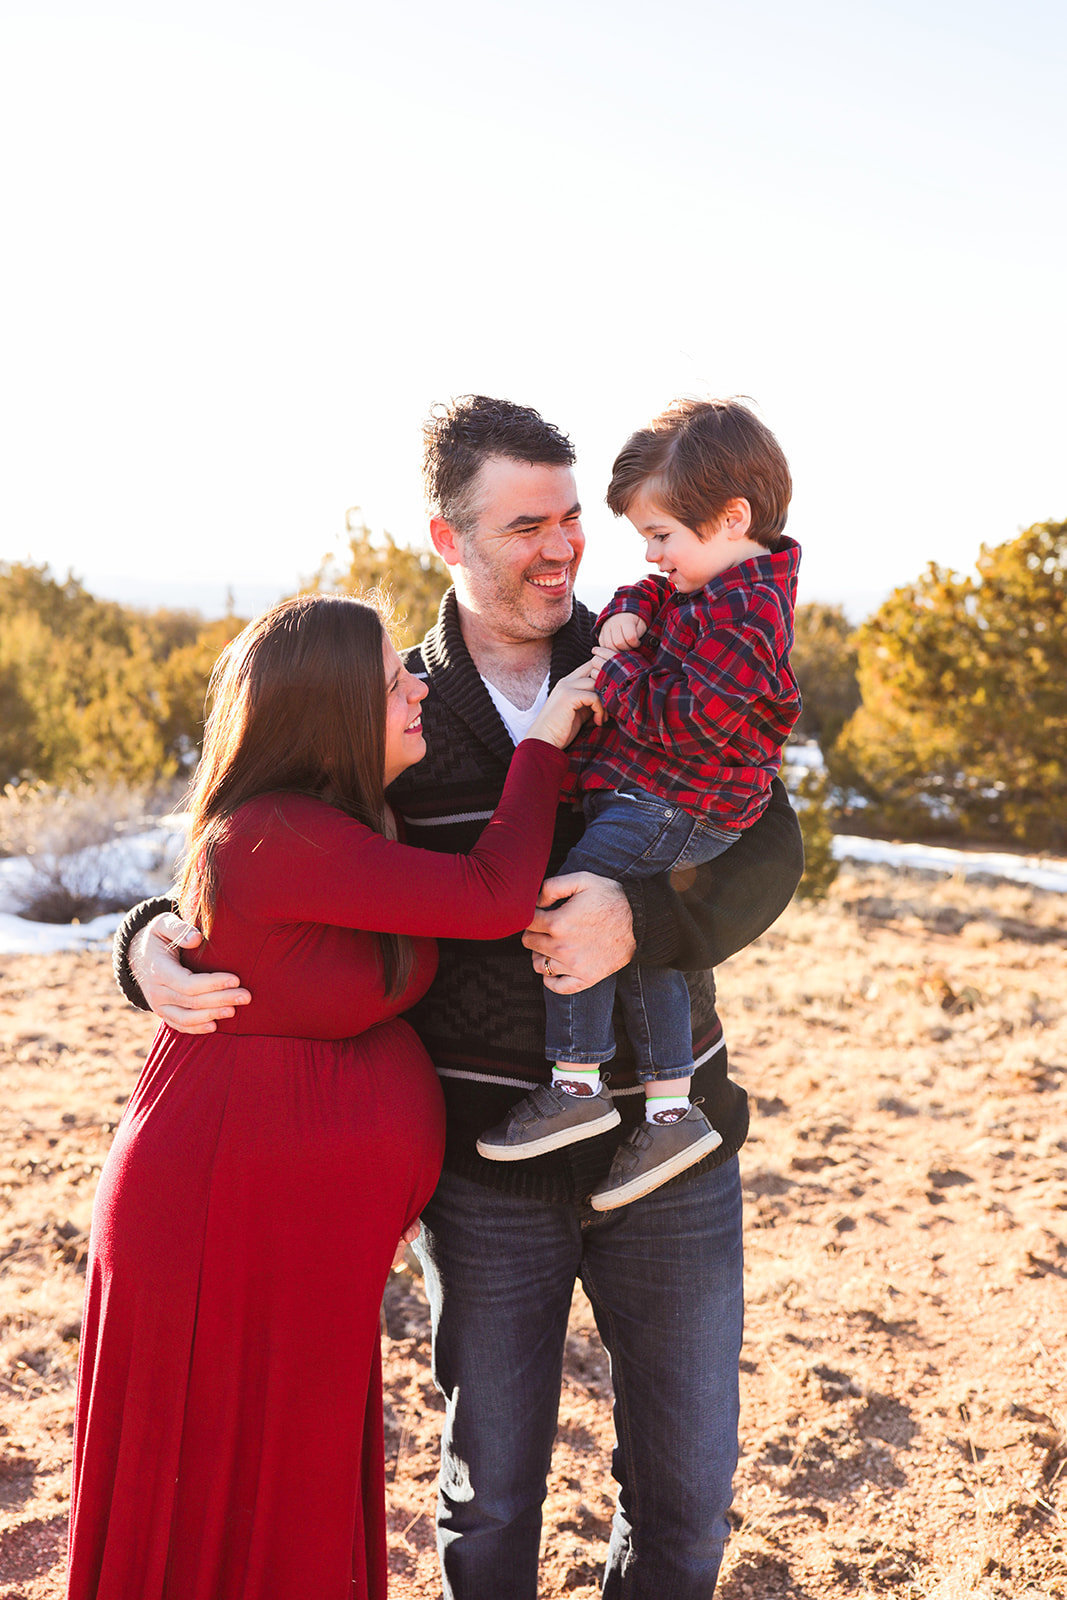 Albuquerque Maternity Photographers_www.tylerbrooke.com_Kate Kauffman_002